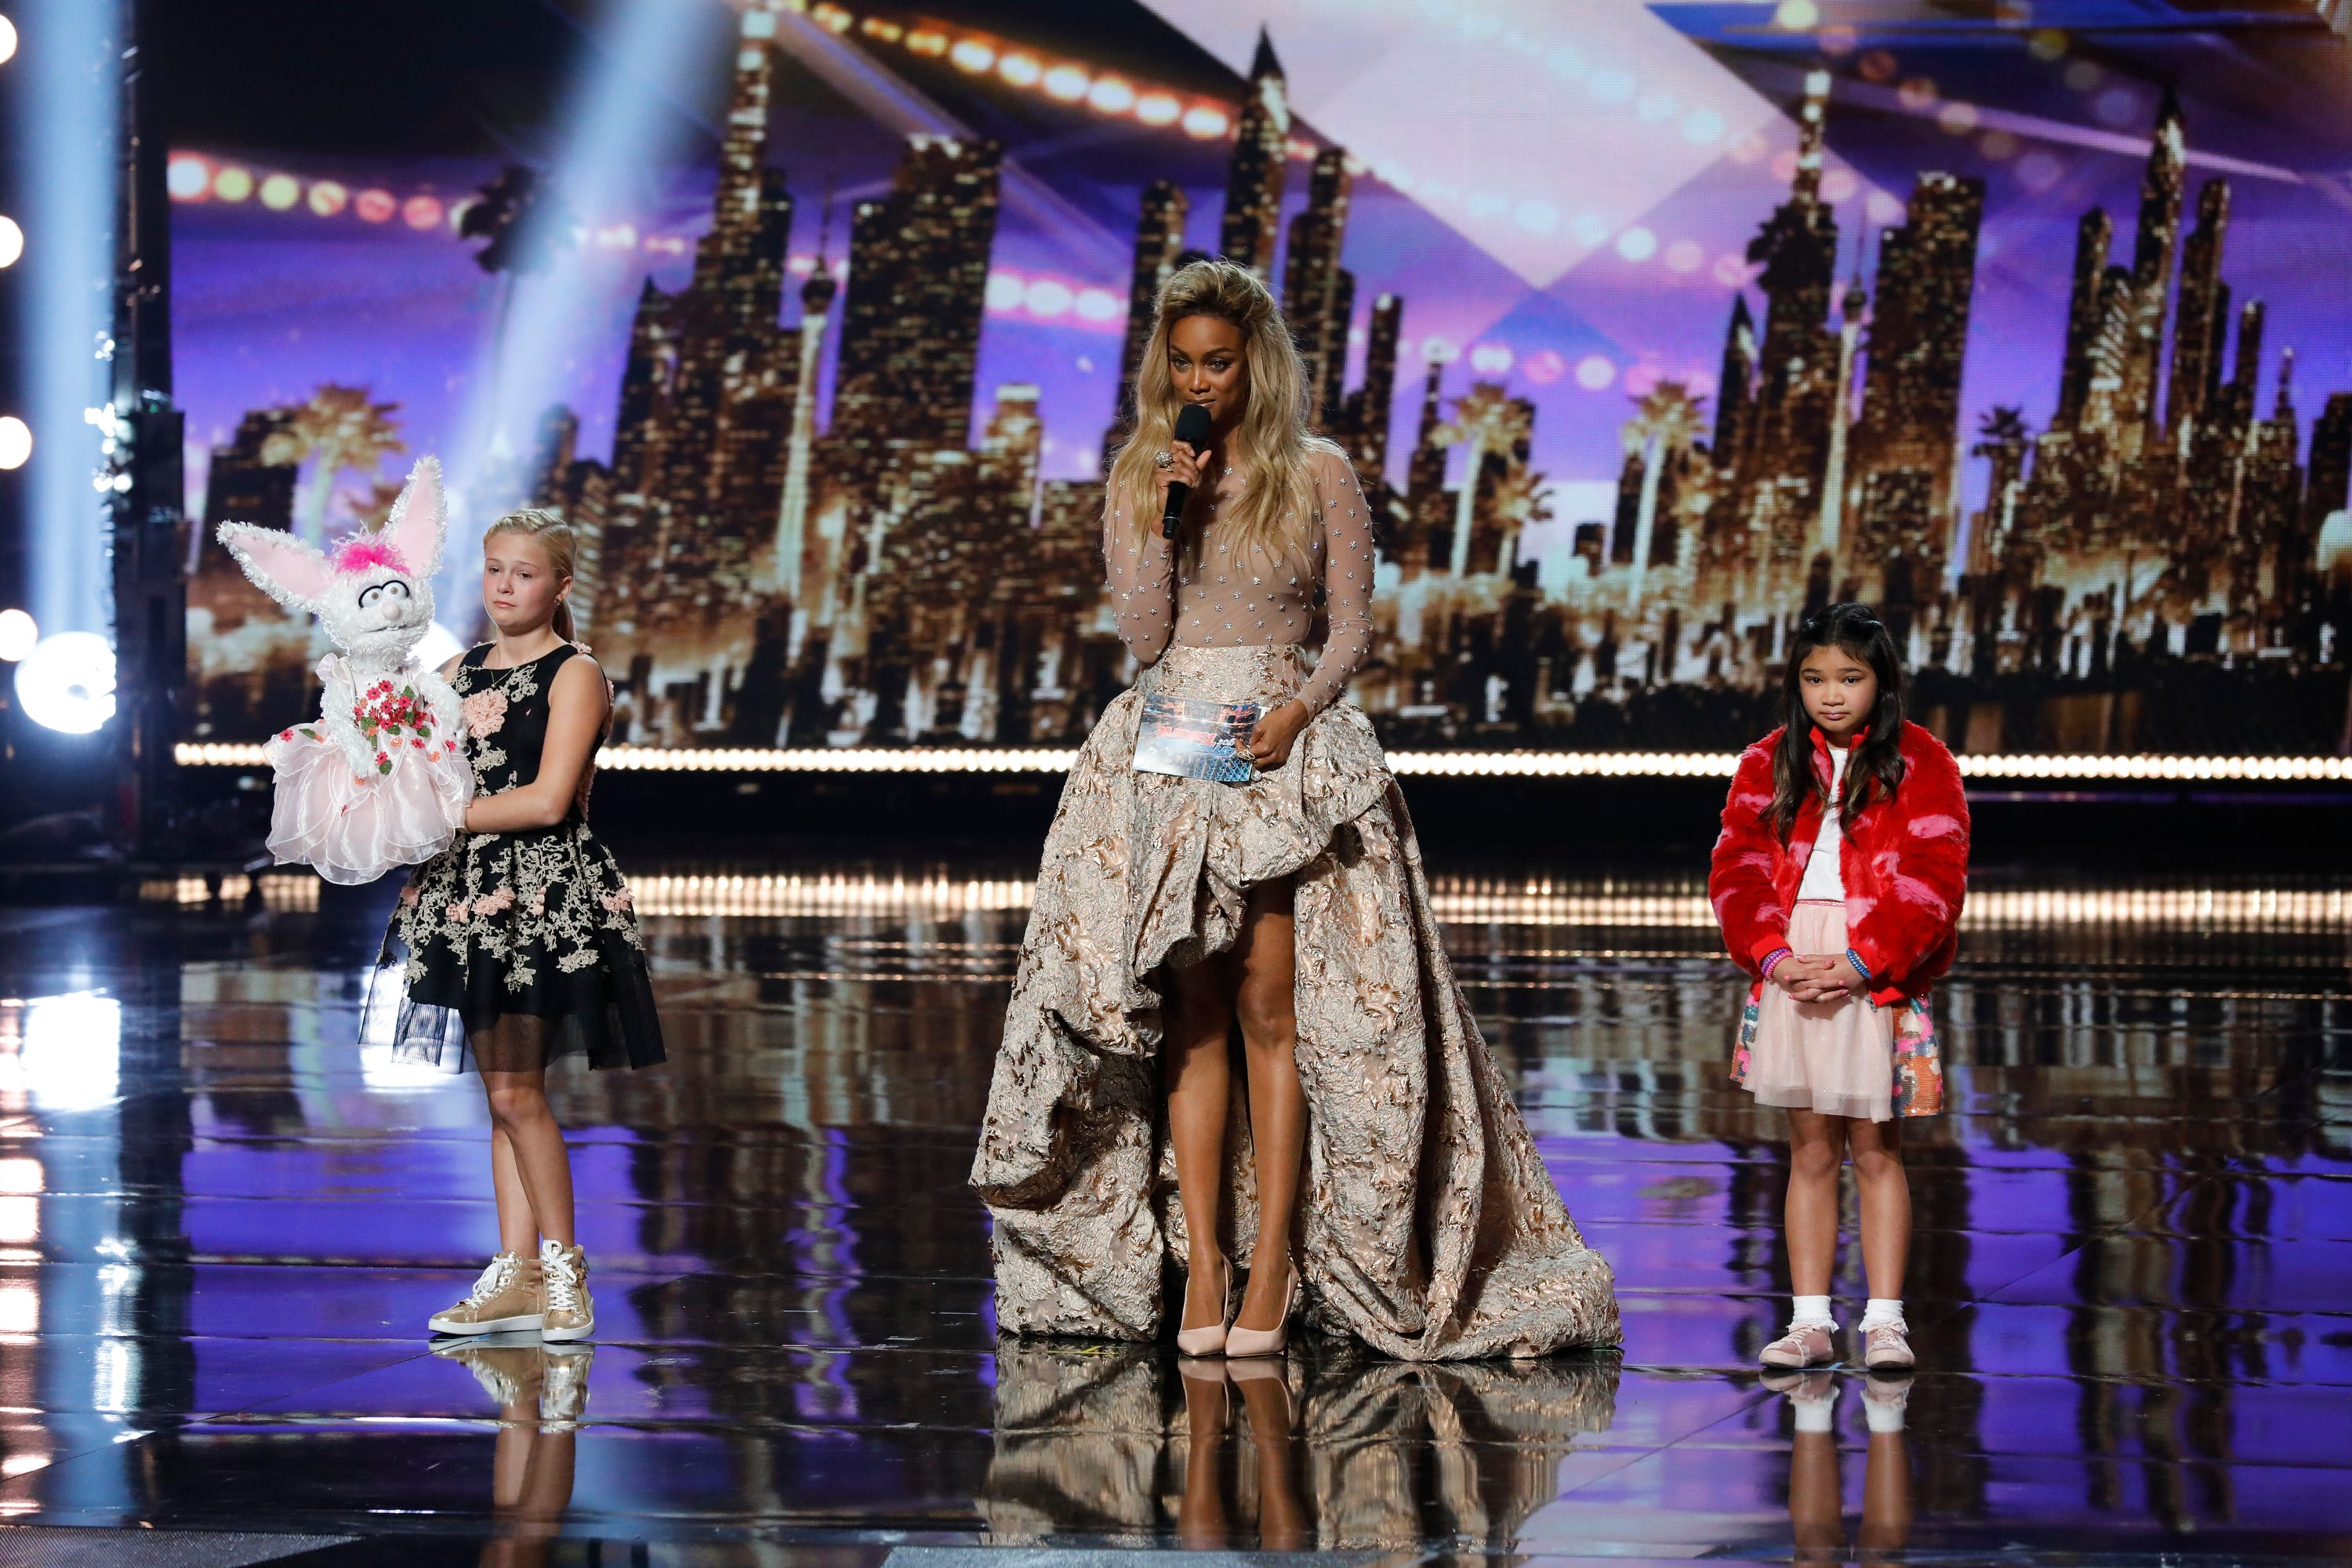 Tyra Banks recreates her iconic 'Top Model' moment after 'AGT' finale